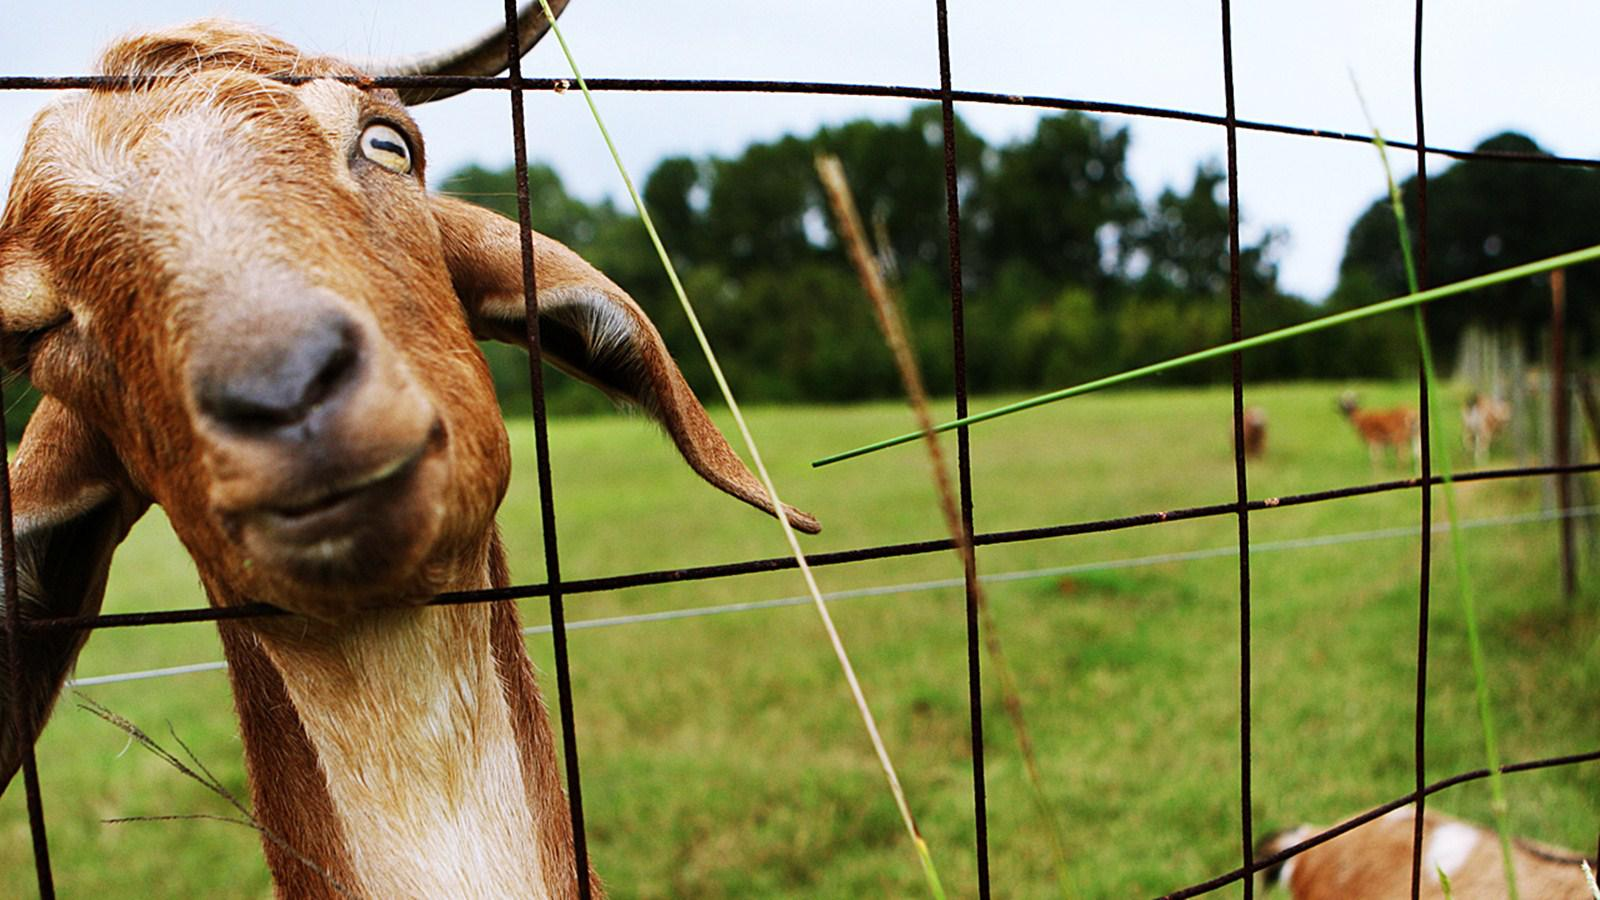 Animated Happy New Year D Hd Goat Simulator Background Wallpaper Download Free